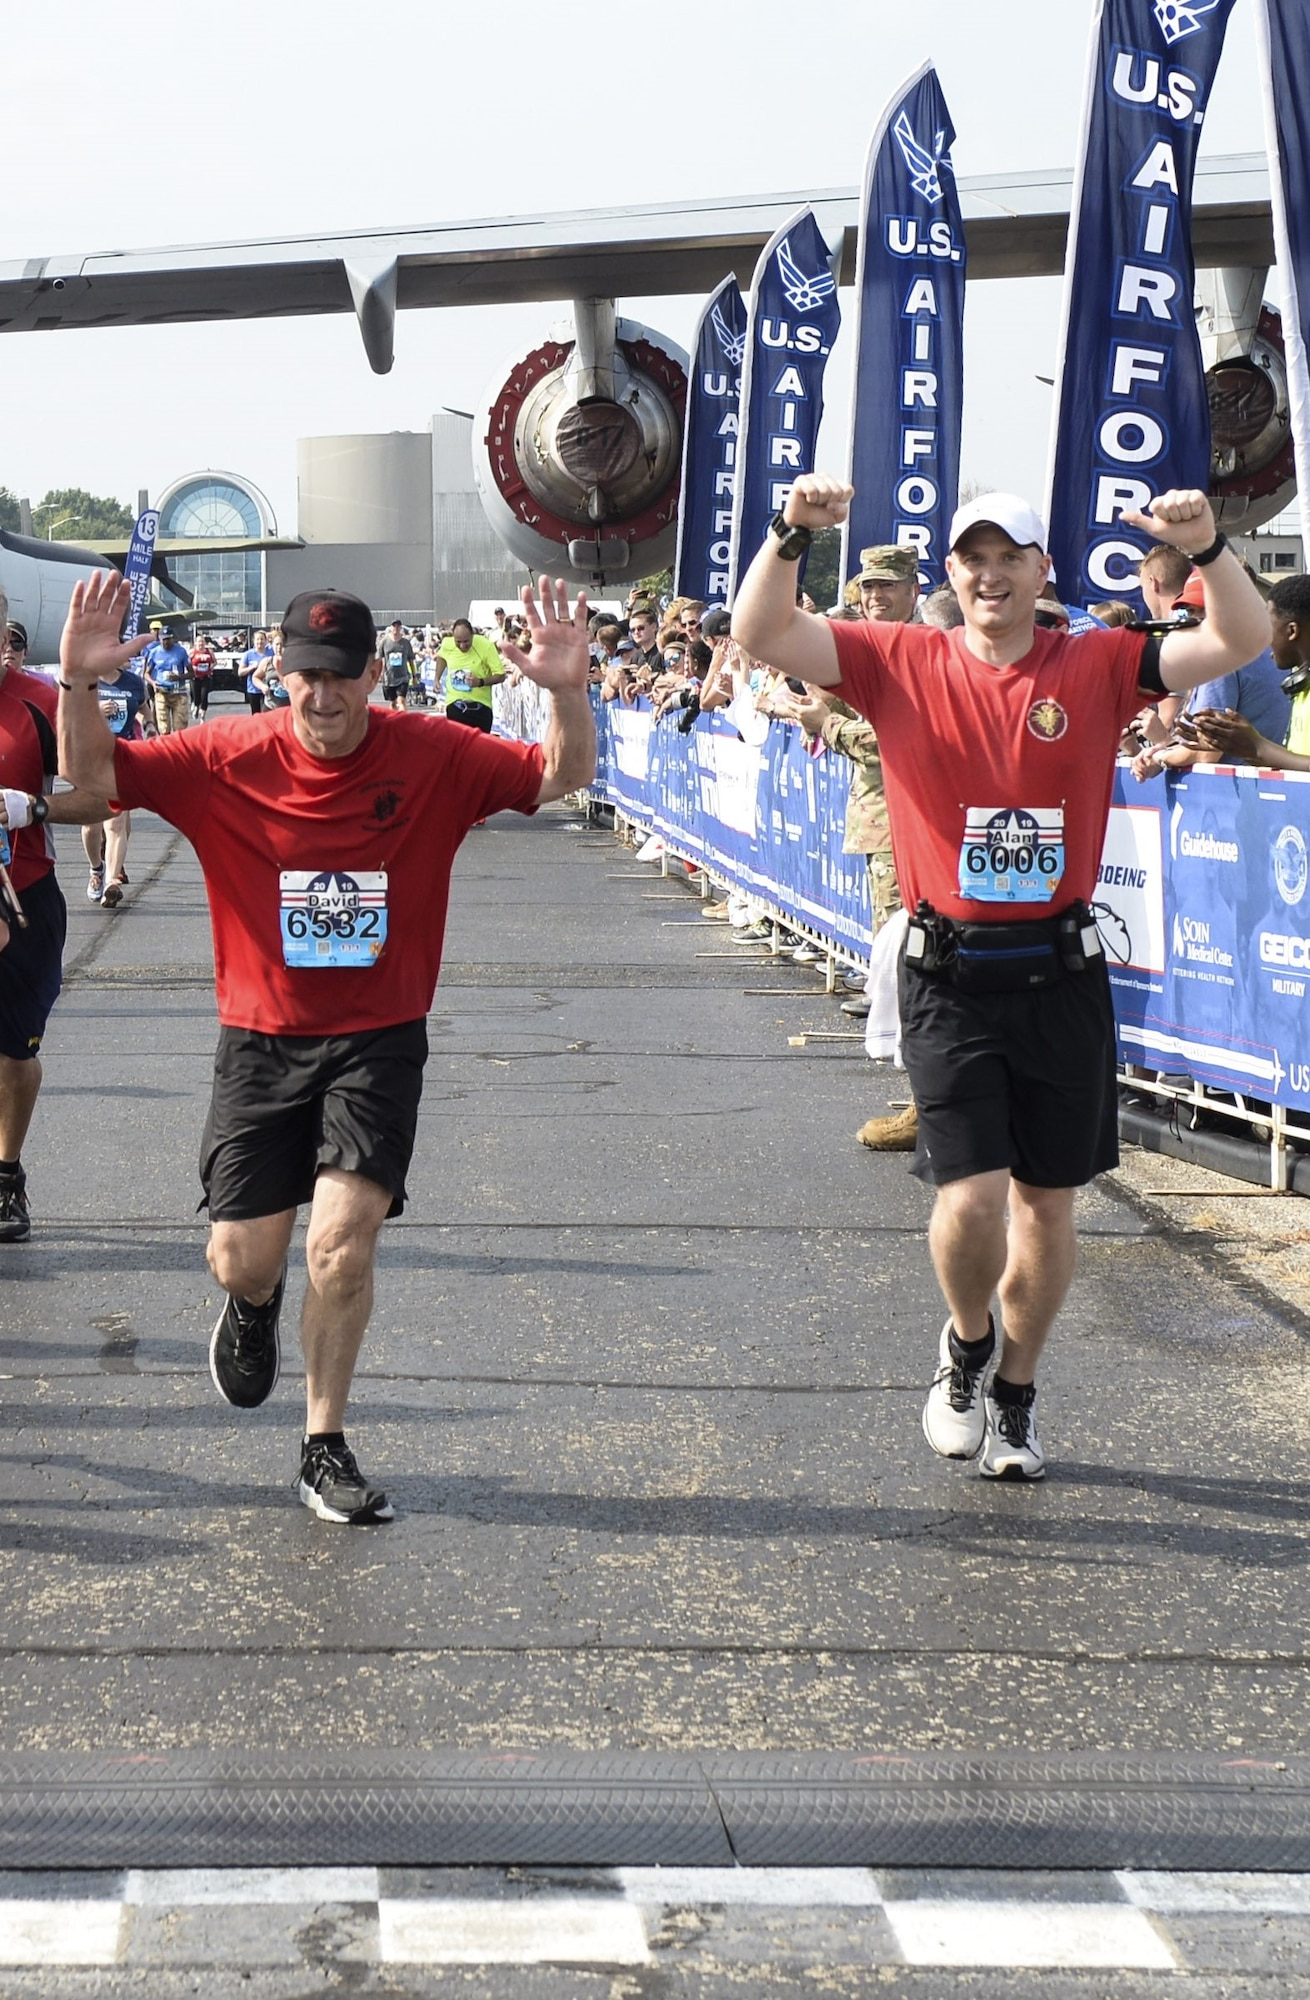 Air Force Chief of Staff Gen. David L. Goldfein crosses the finish line Saturday, Sept. 21, 2019 at the Air Force Half Marathon at Wright-Patterson AFB in Ohio. Goldfein ran the race to promote the importance of physical fitness for the Air Force. Like many other runners, Goldfein was also  running to honor specific airmen, in this case, Staff Sgt. Dylan Elchin a Special Tactics combat controller who was killed in Afghanistan in 2018. Goldfein wore a wristband with Elchin's name and a t-shirt from the Special Tactic memorial march held earlier this year. (U.S. Air Force photo by Wesley Farnsworth)